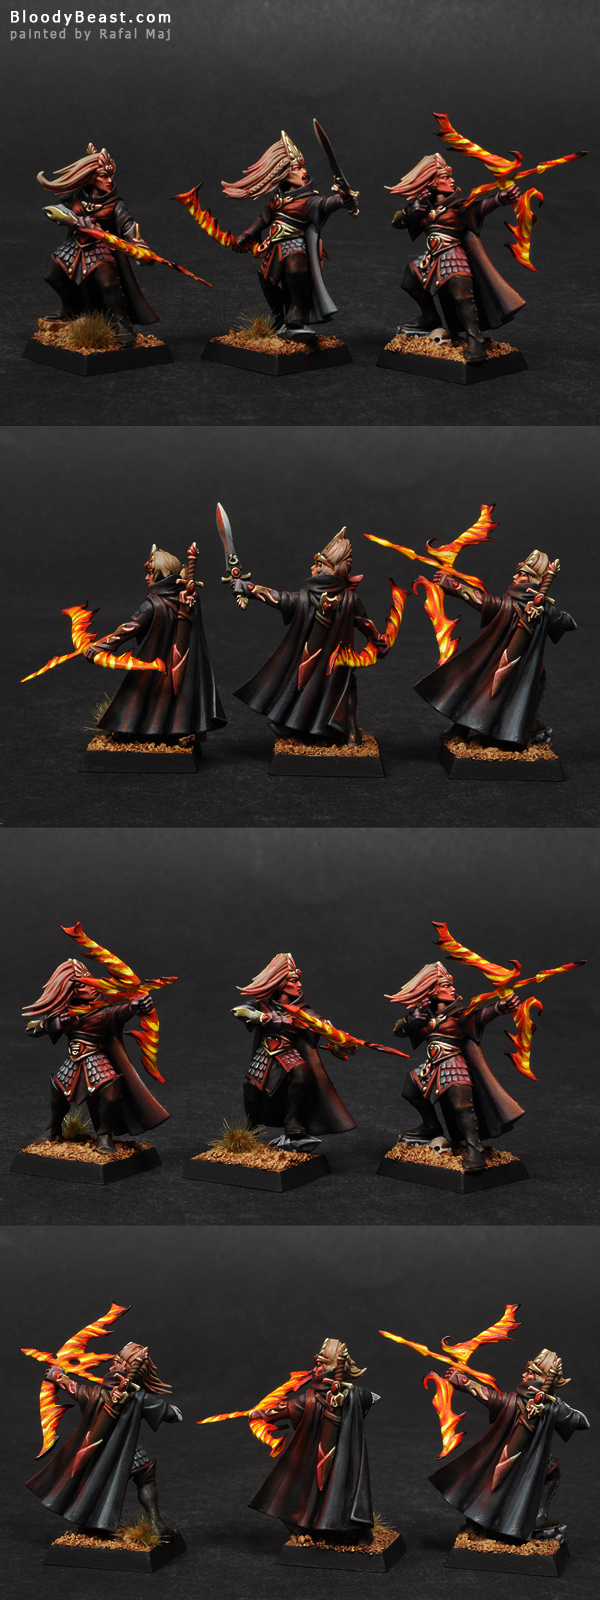 High Elf Sisters of Avelorn painted by Rafal Maj (BloodyBeast.com)